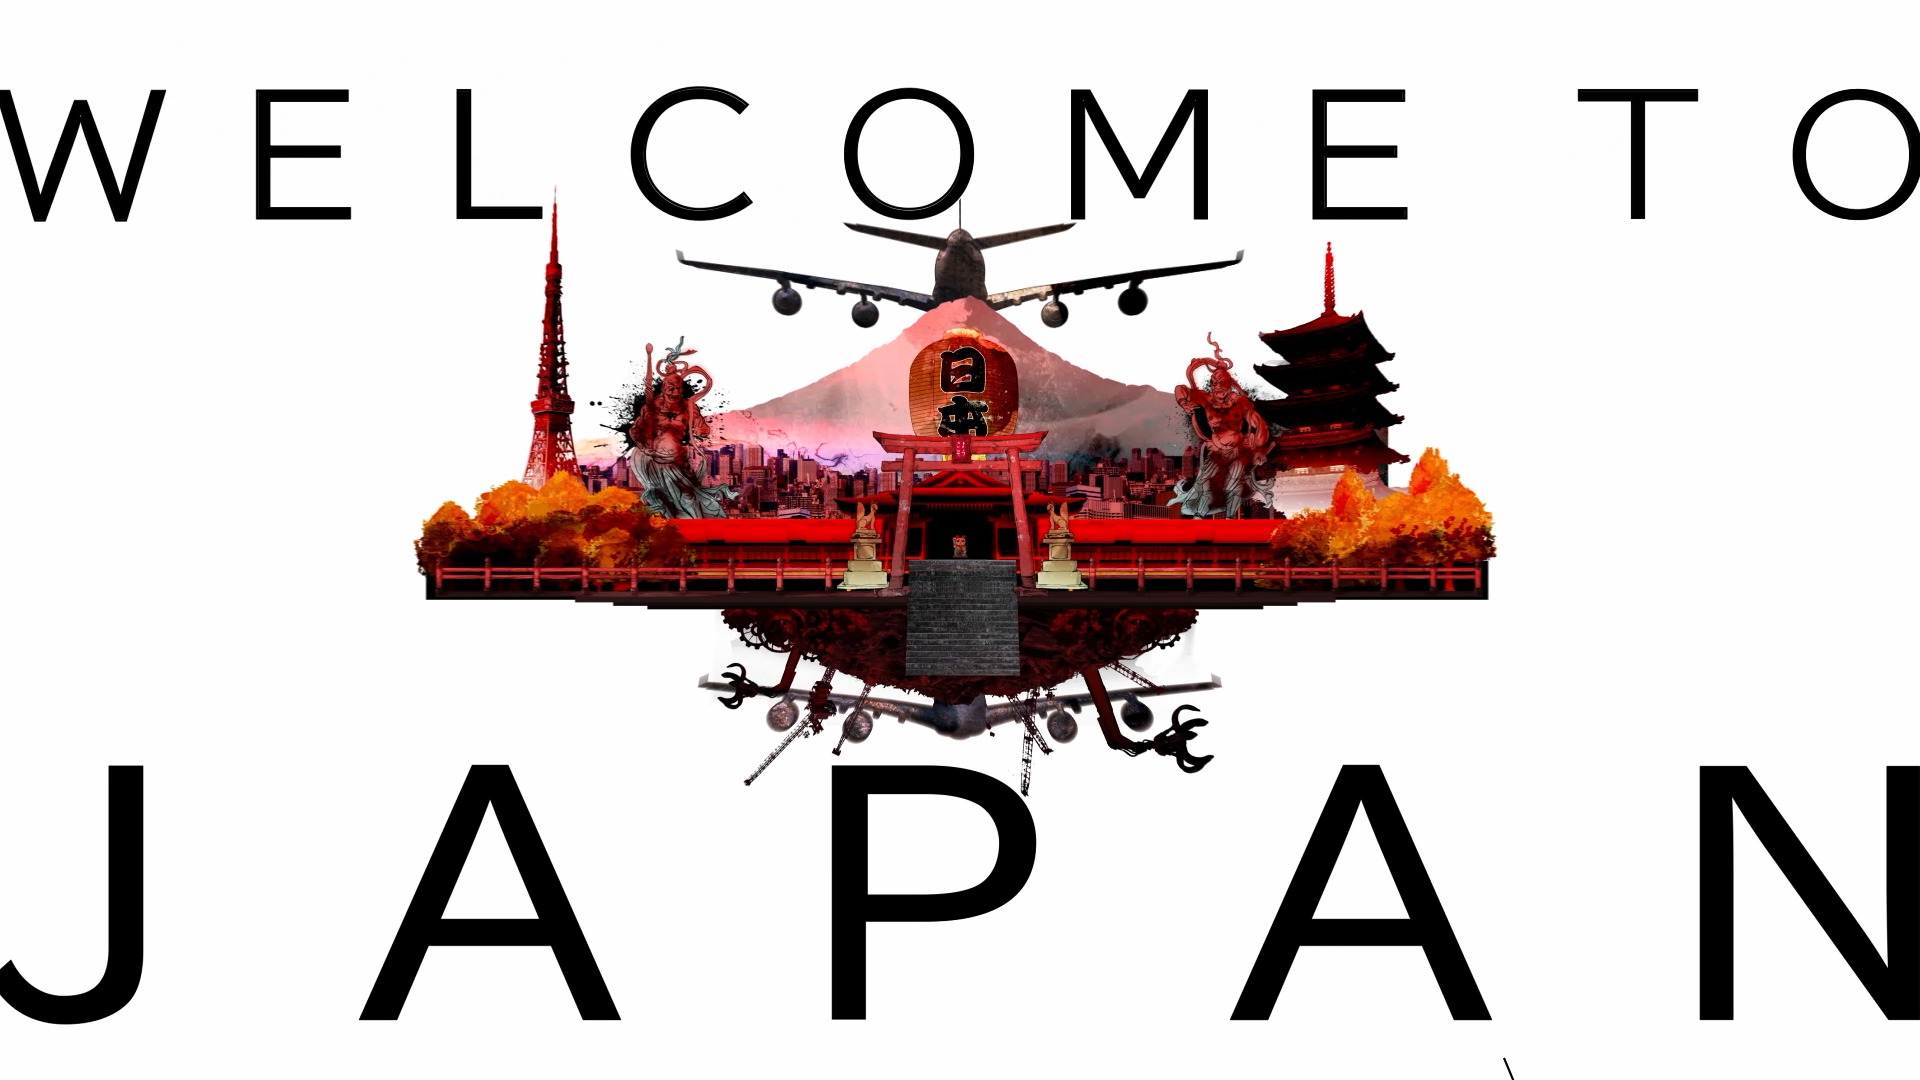 [Welcome to JAPAN]